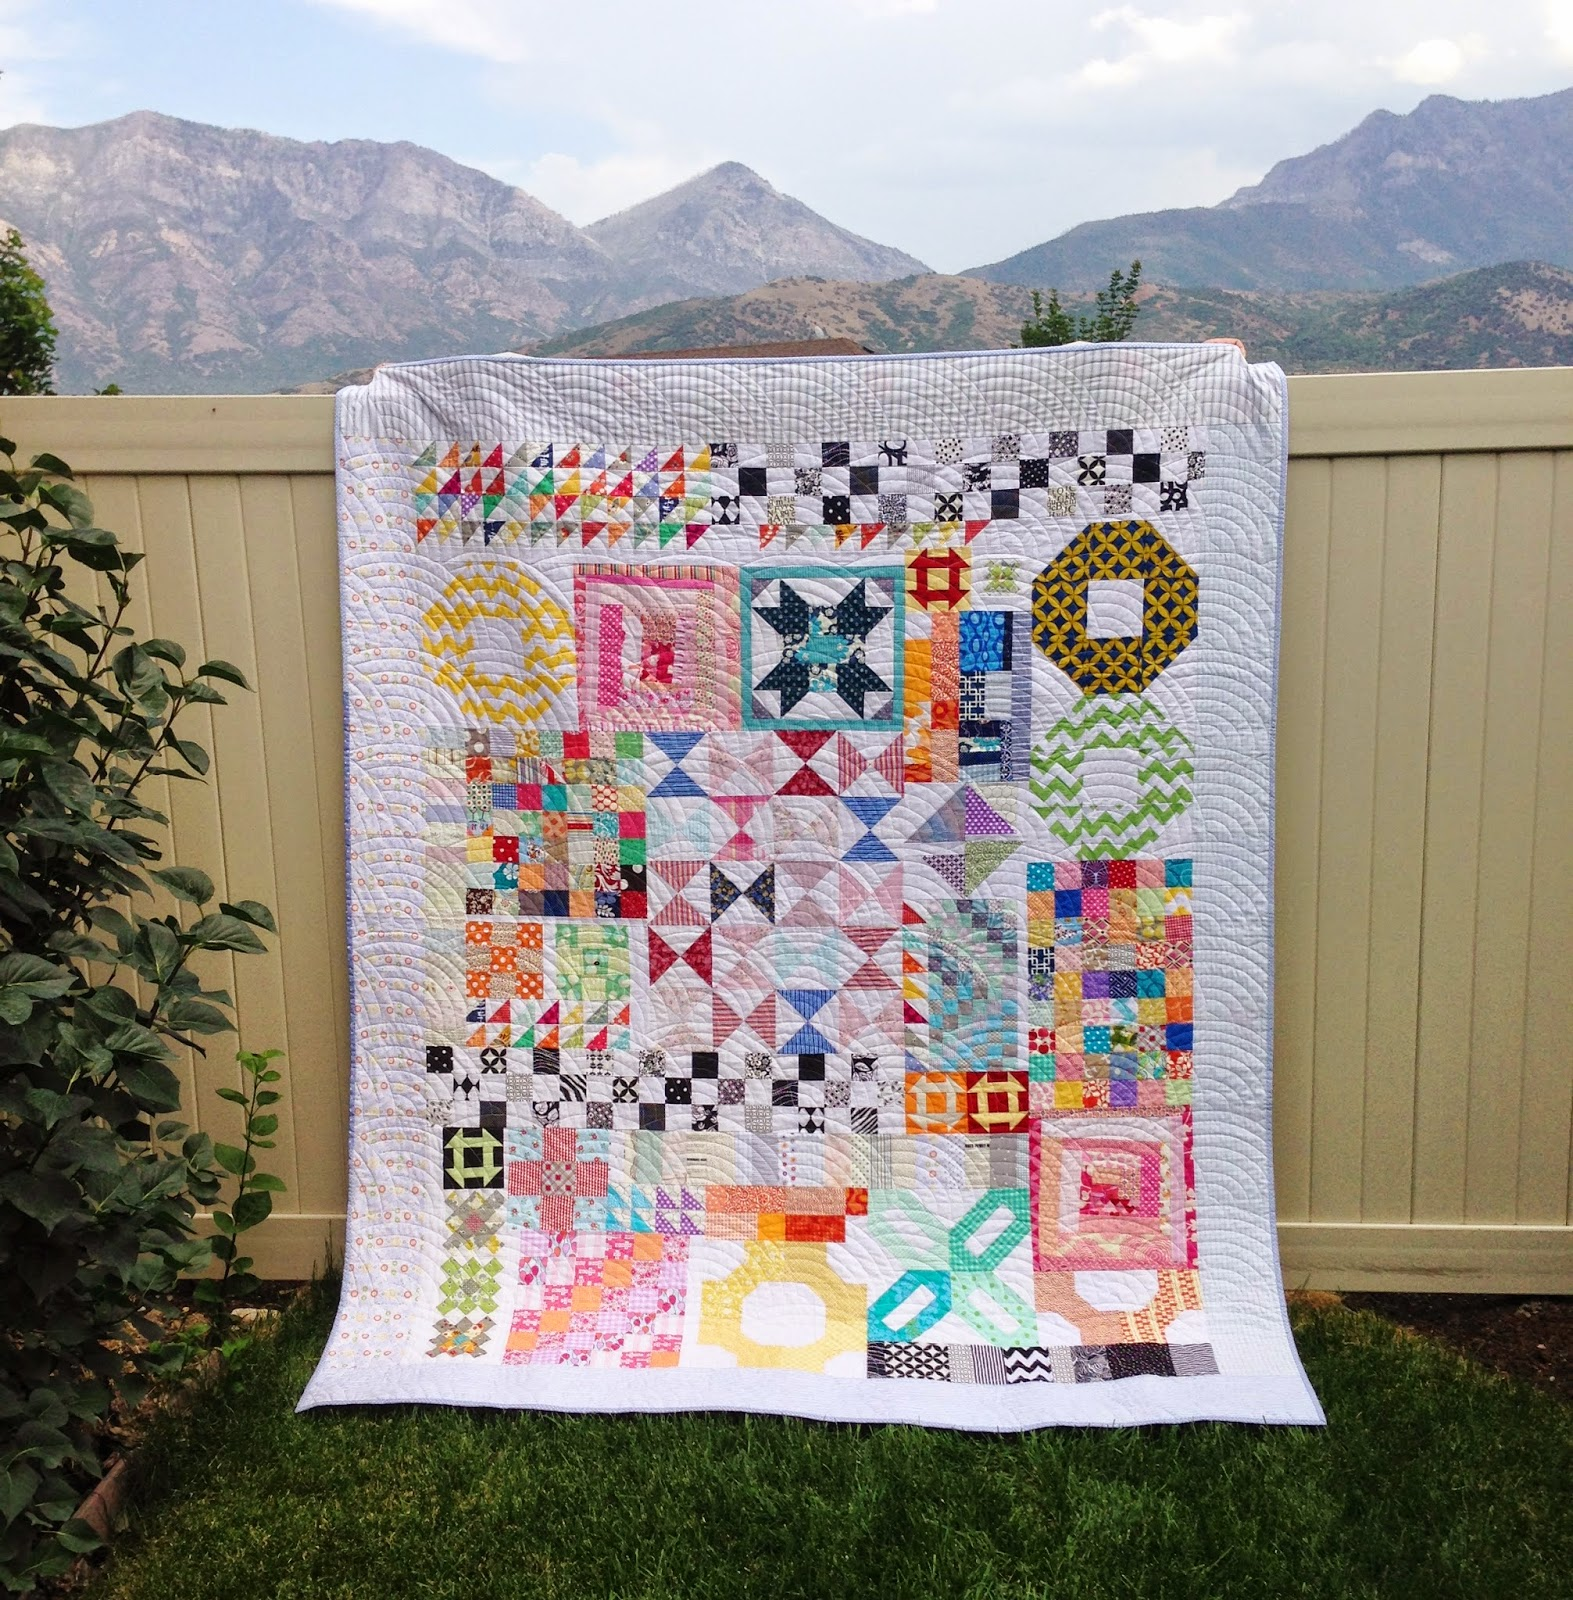 Kitchen Sink Quilt Full View